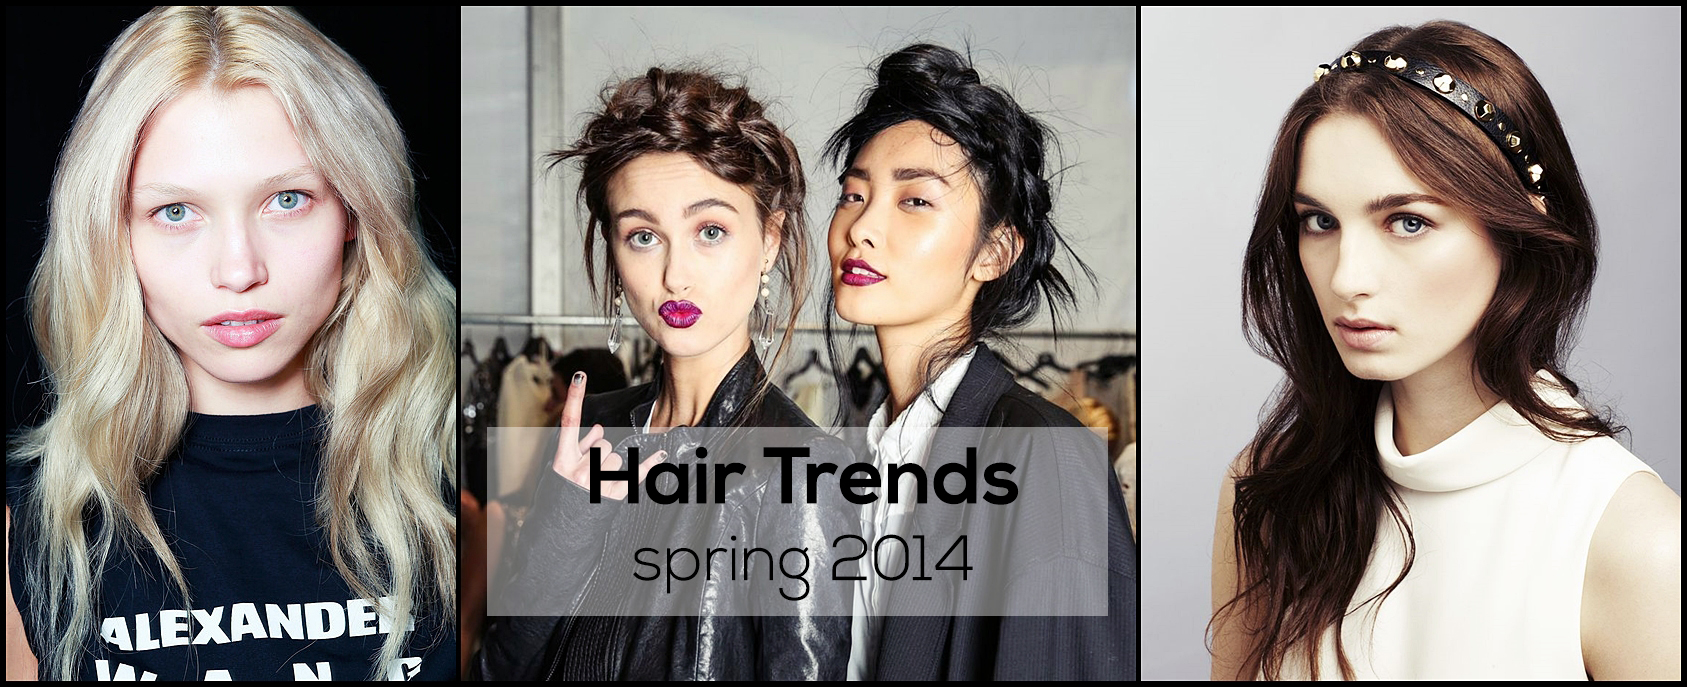 Hair Trends Spring 2014